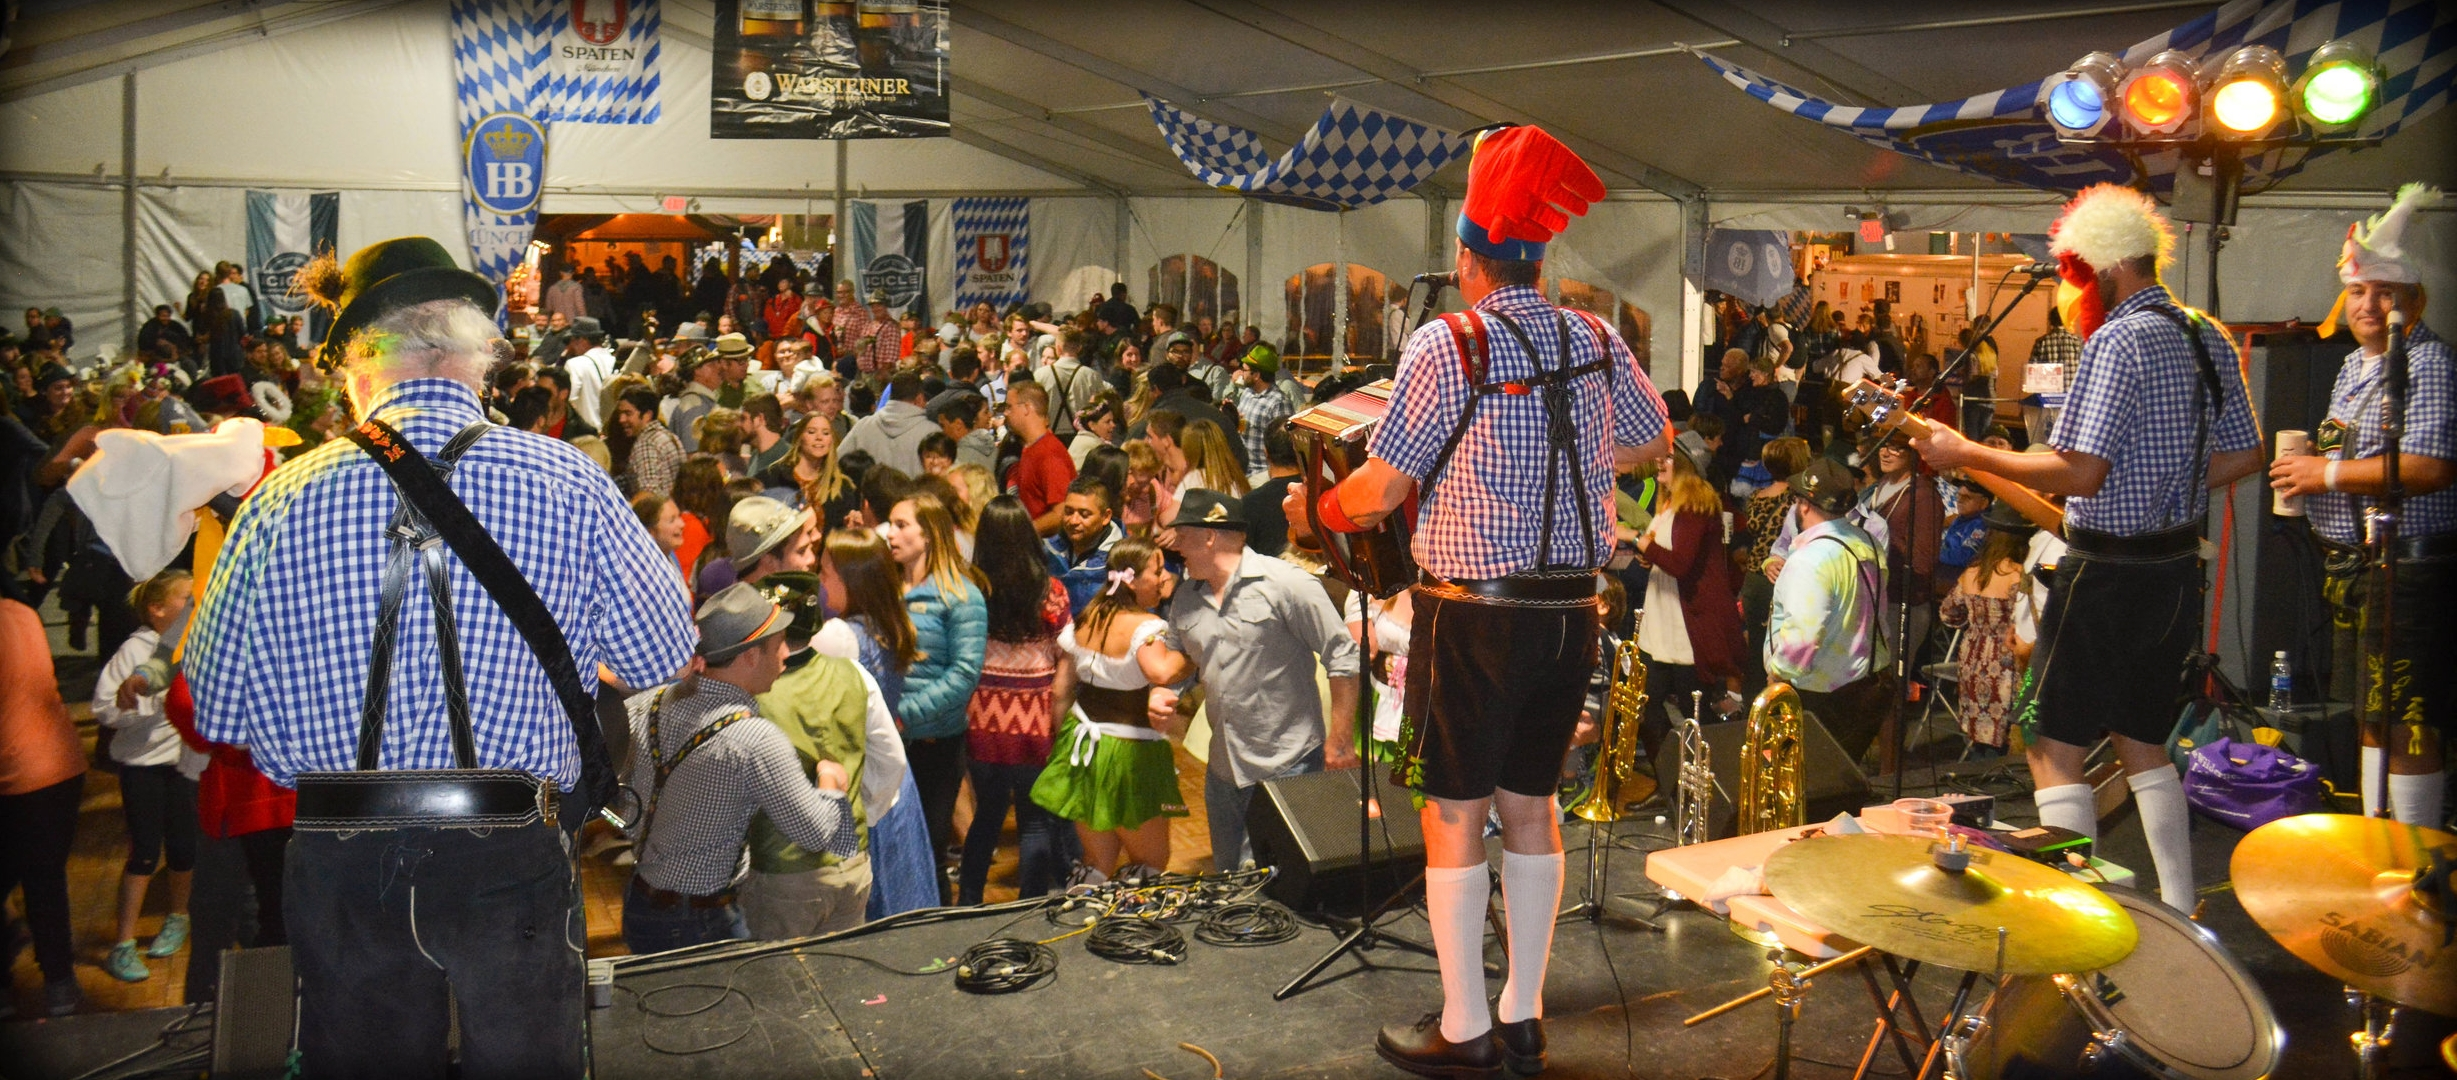 The Chicken Dance, Leavenworth Oktoberfest 2014